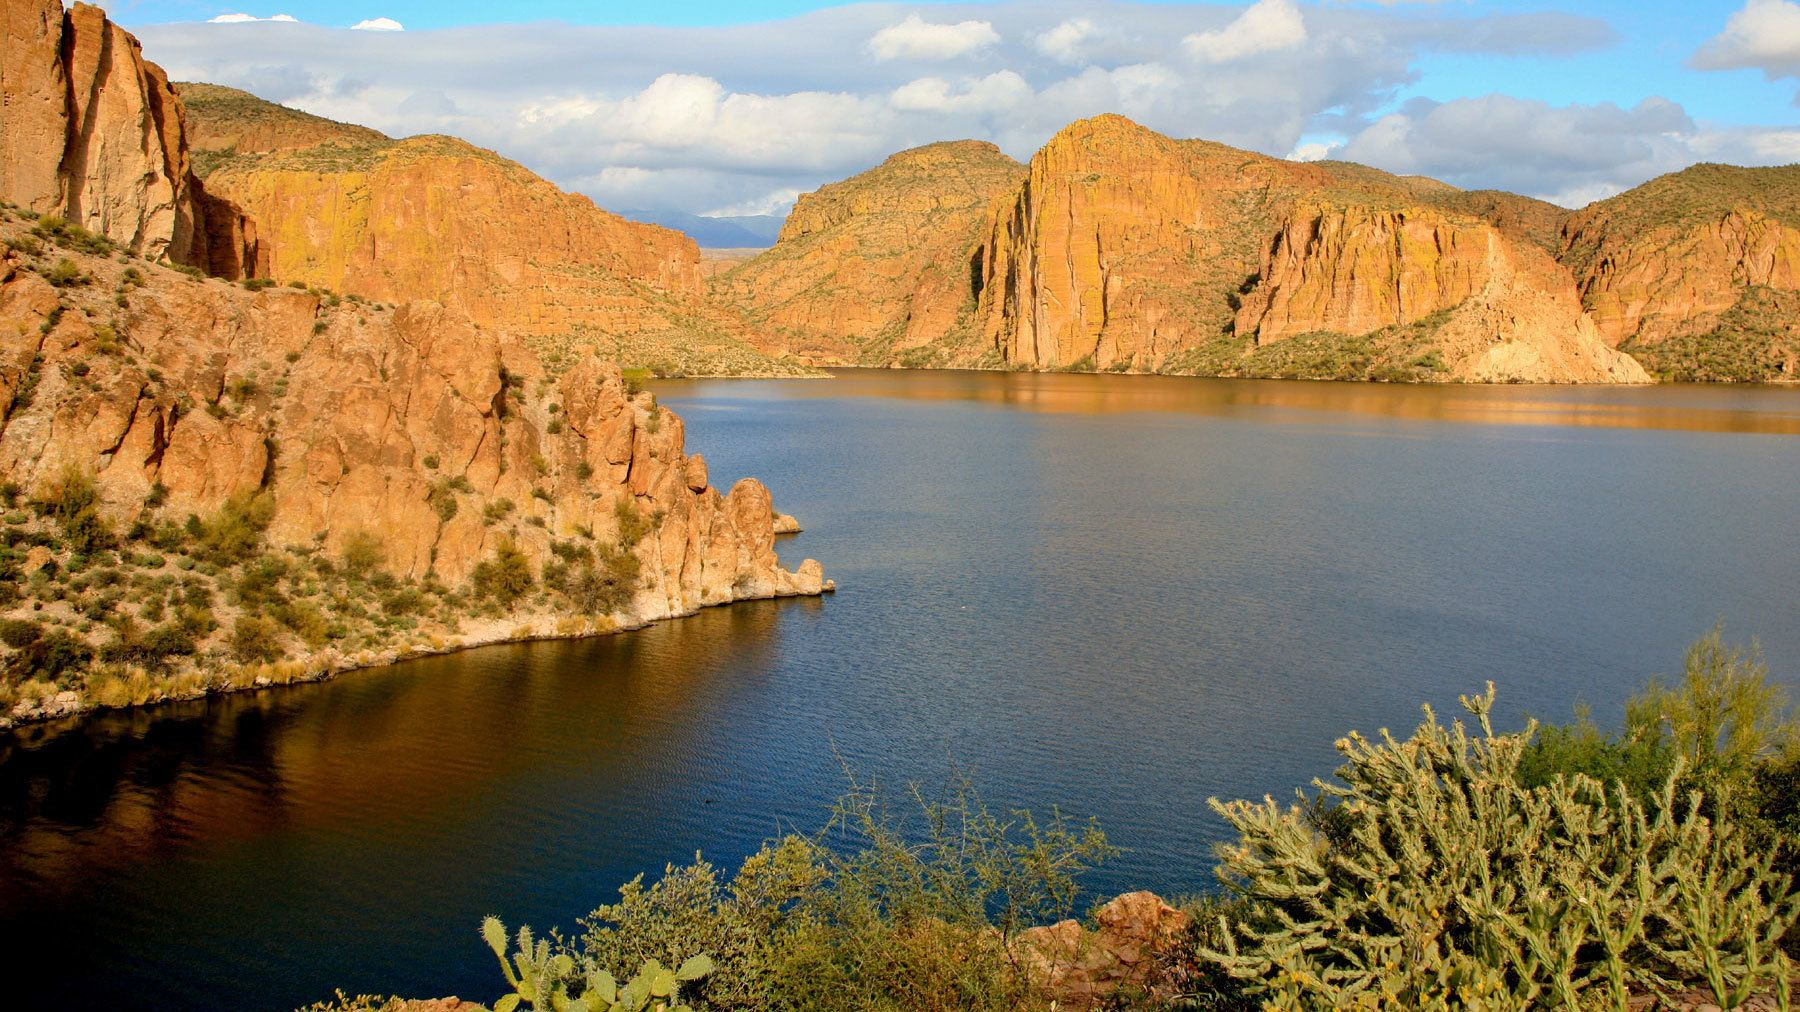 Cliffs and rock formations surround Canyon Lake near Apache Junction in Arizona